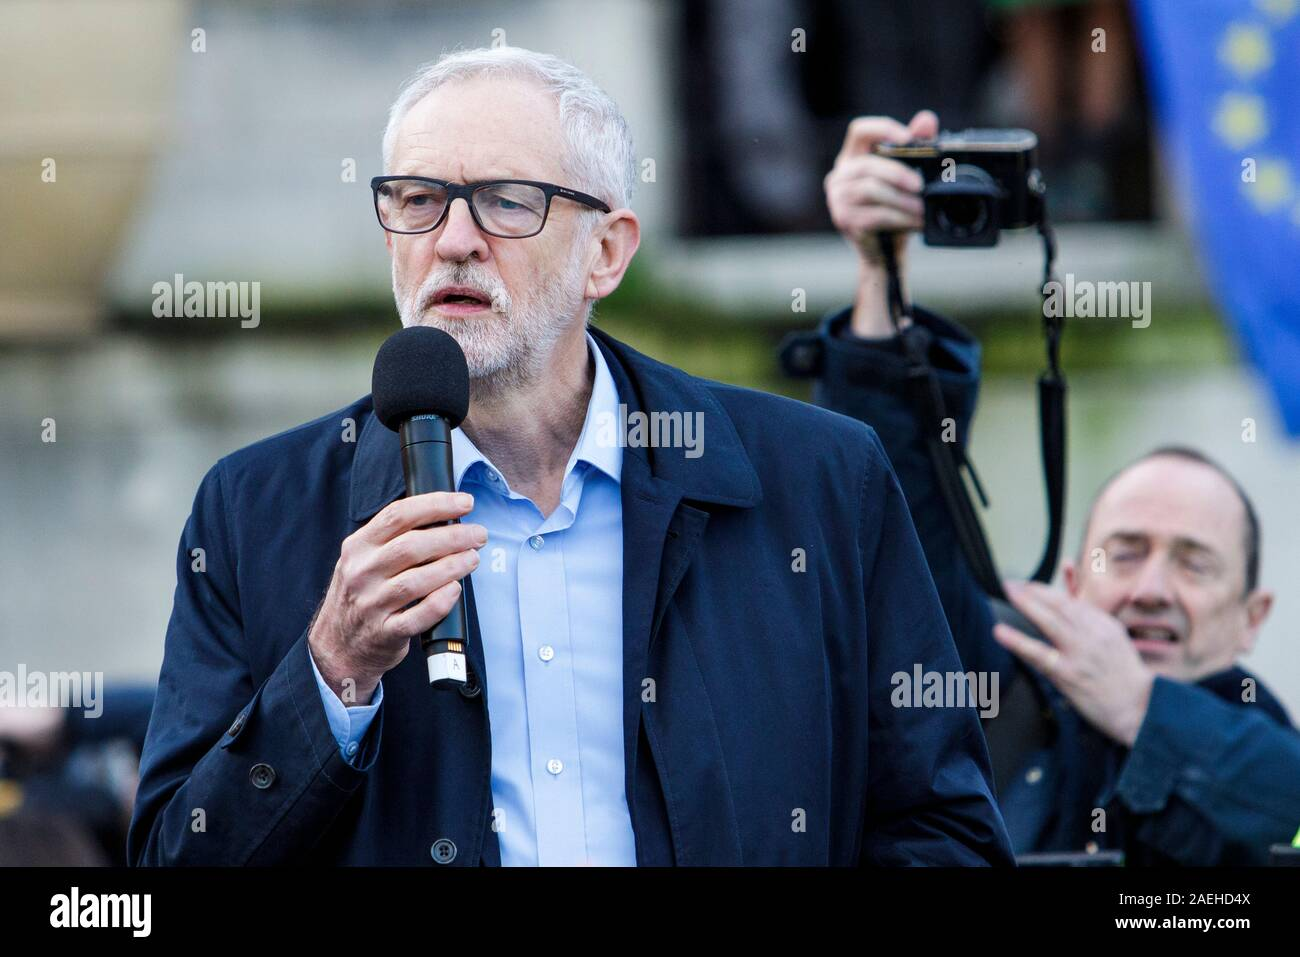 Bristol, UK, 9th Dec, 2019. Jeremy Corbyn is pictured speaking to supporters at a rally in College Green,Bristol.  Credit: Lynchpics/Alamy Live News Stock Photo